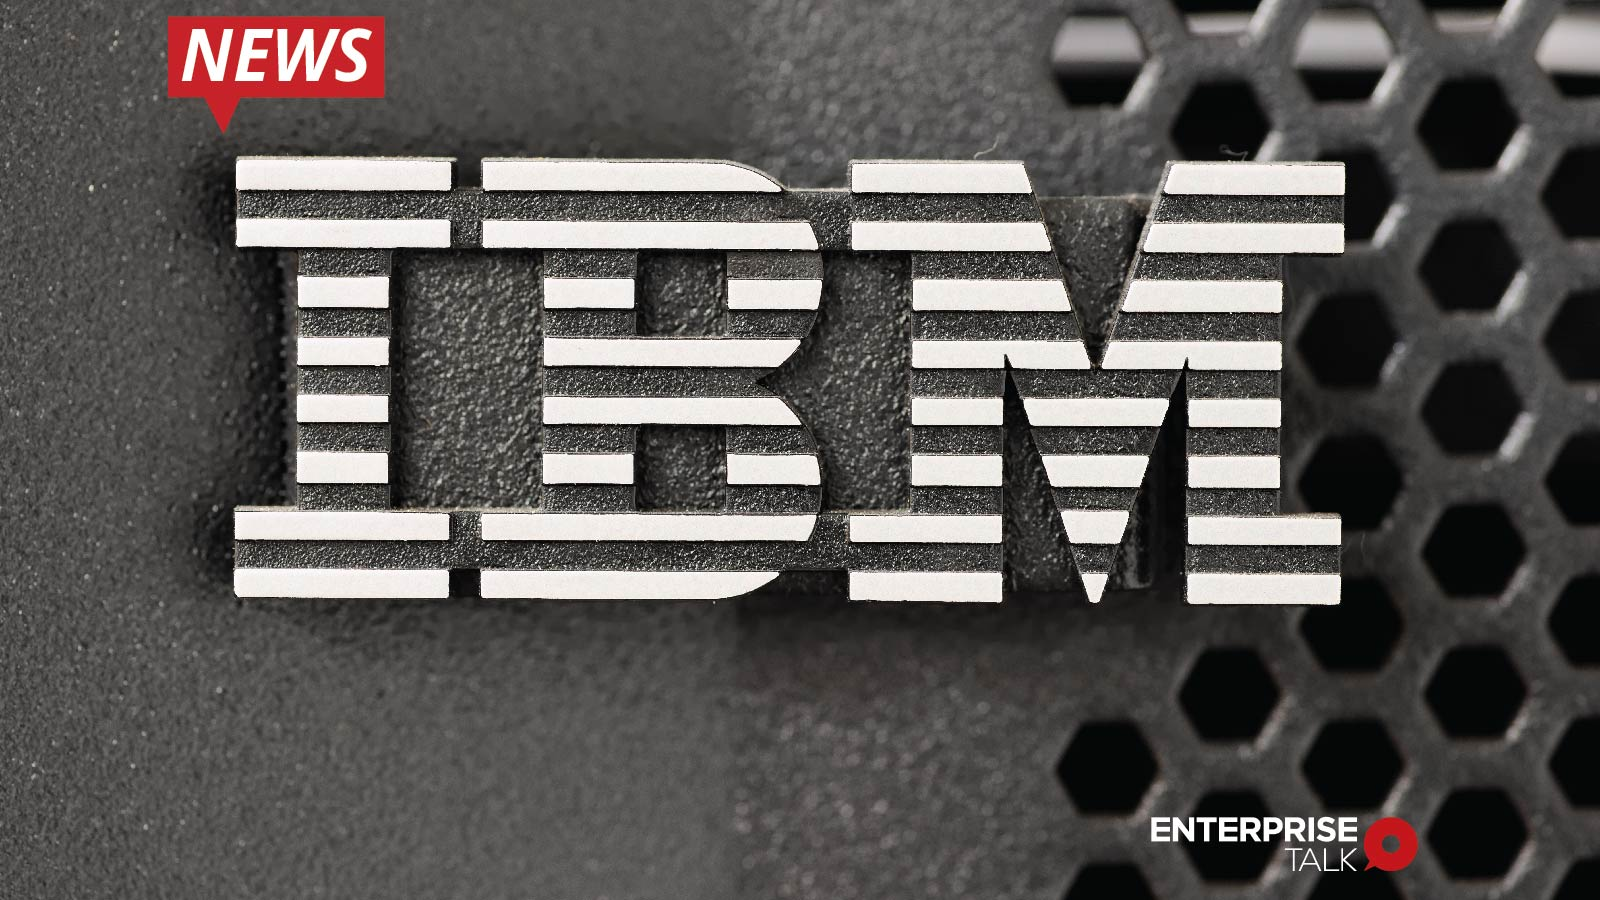 IBM to Acquire SAP Consulting Partner TruQua